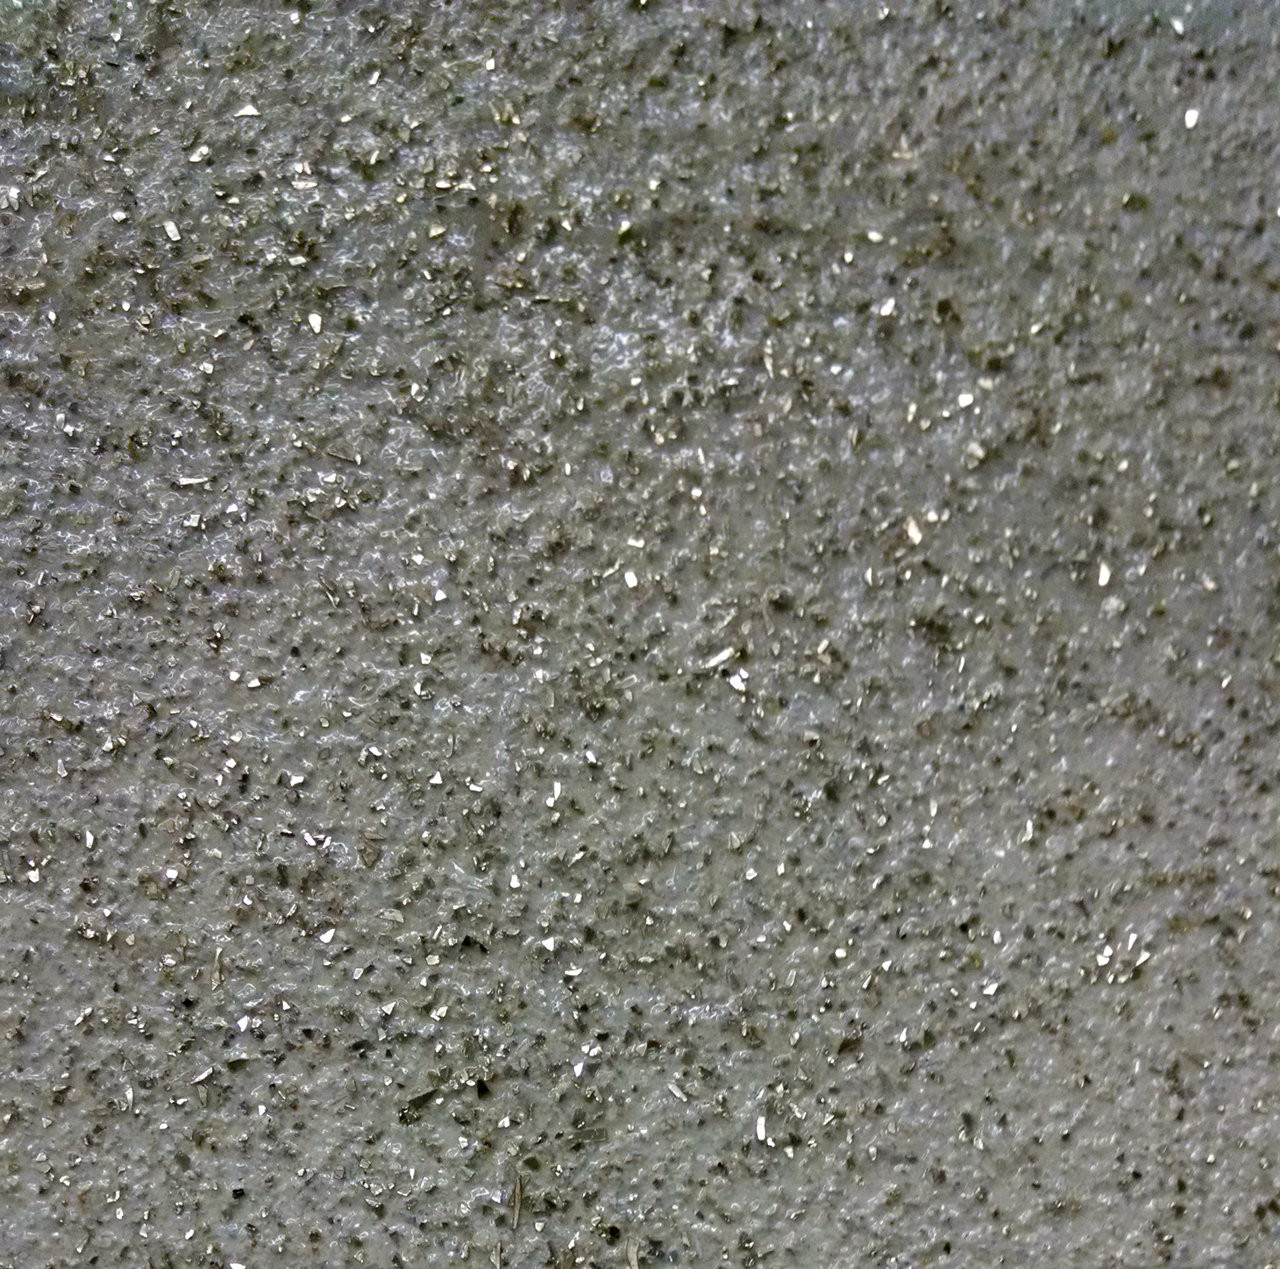 Silvered glister in Gel Glaze over Lifestyle Weathered Granite